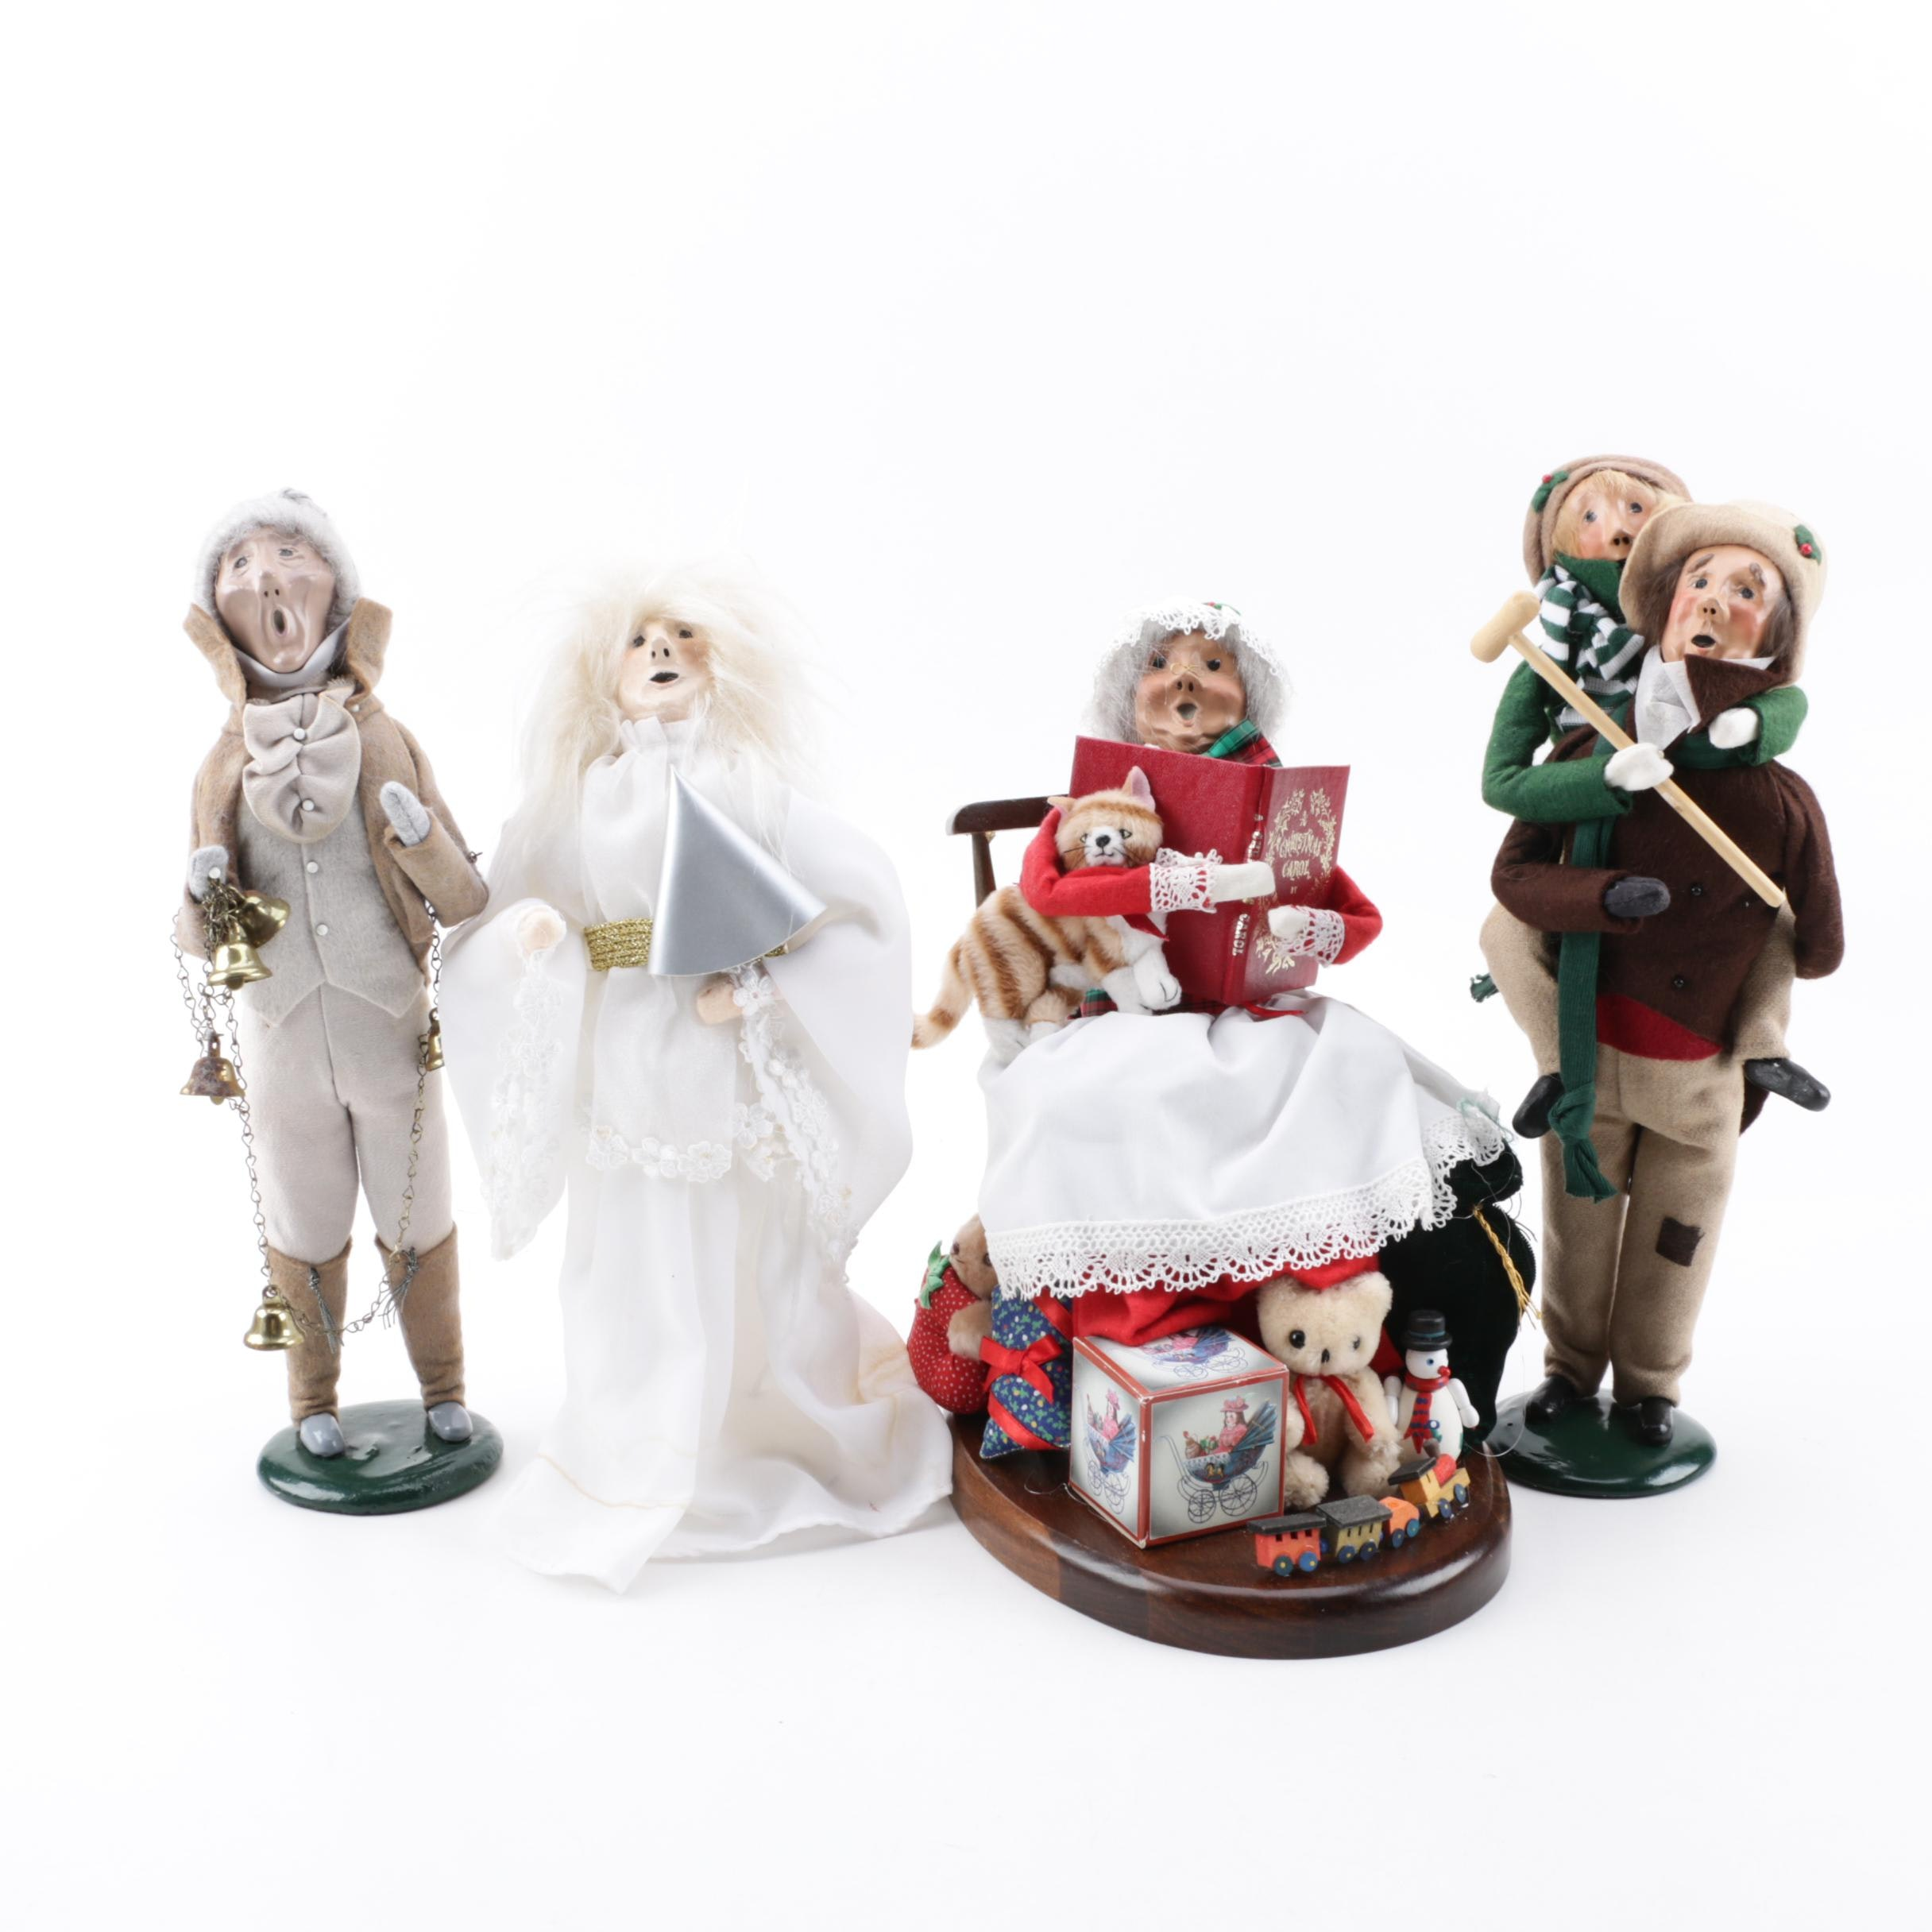 "Byers' Choice Handmade ""Christmas Carol"" Themed Figurines, Late 20th Century"